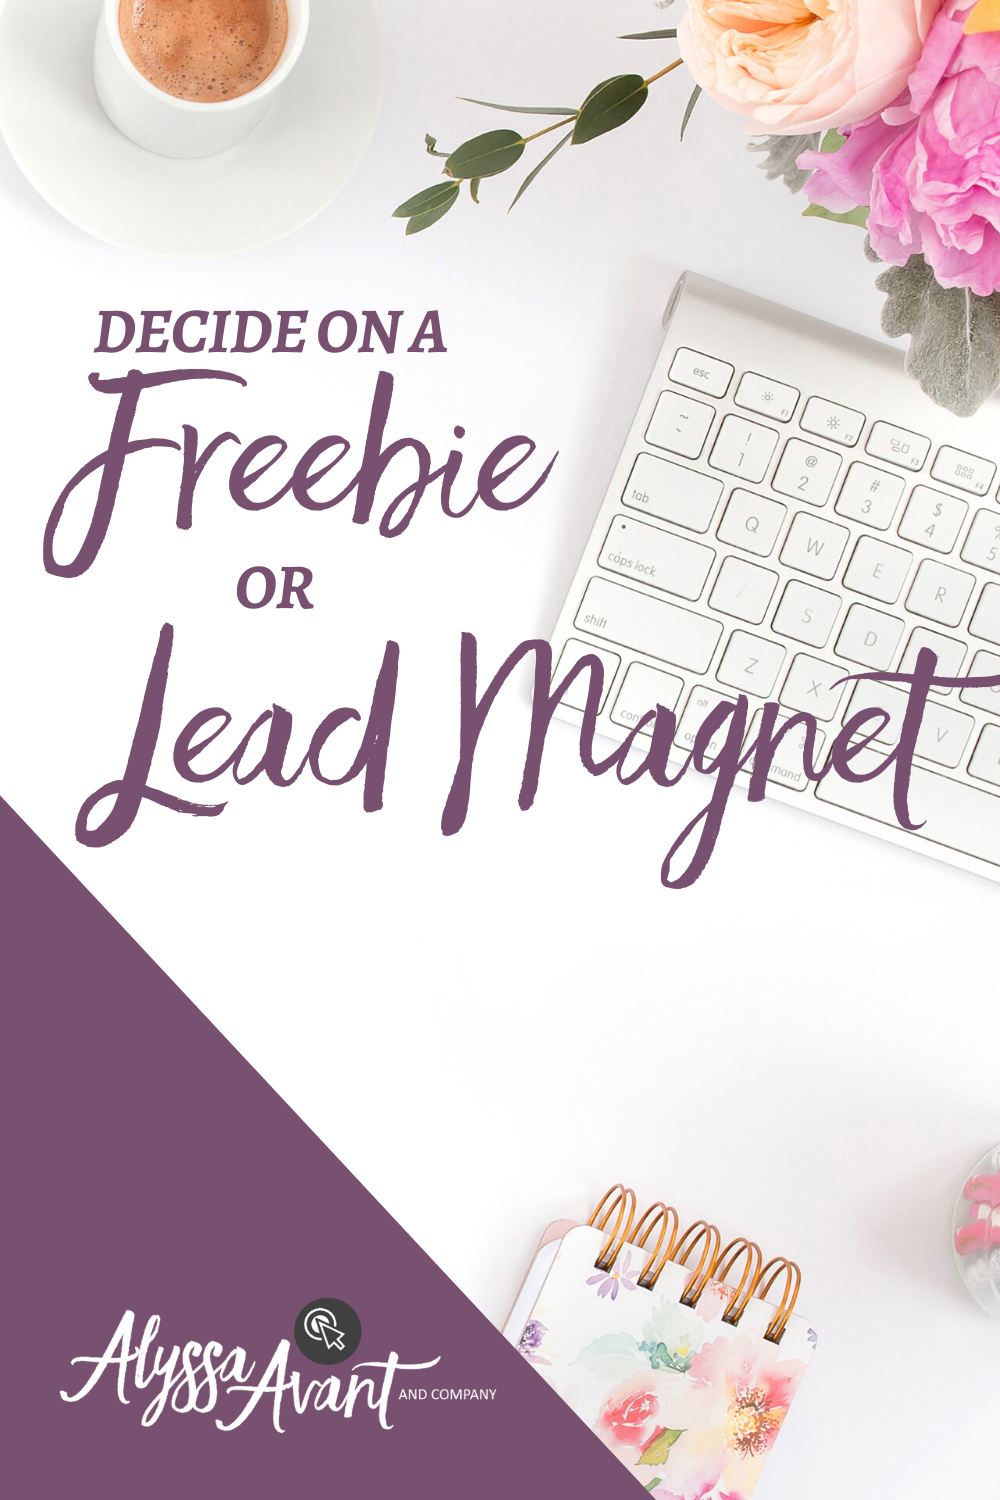 Decide on a Freebie or Lead Magnet